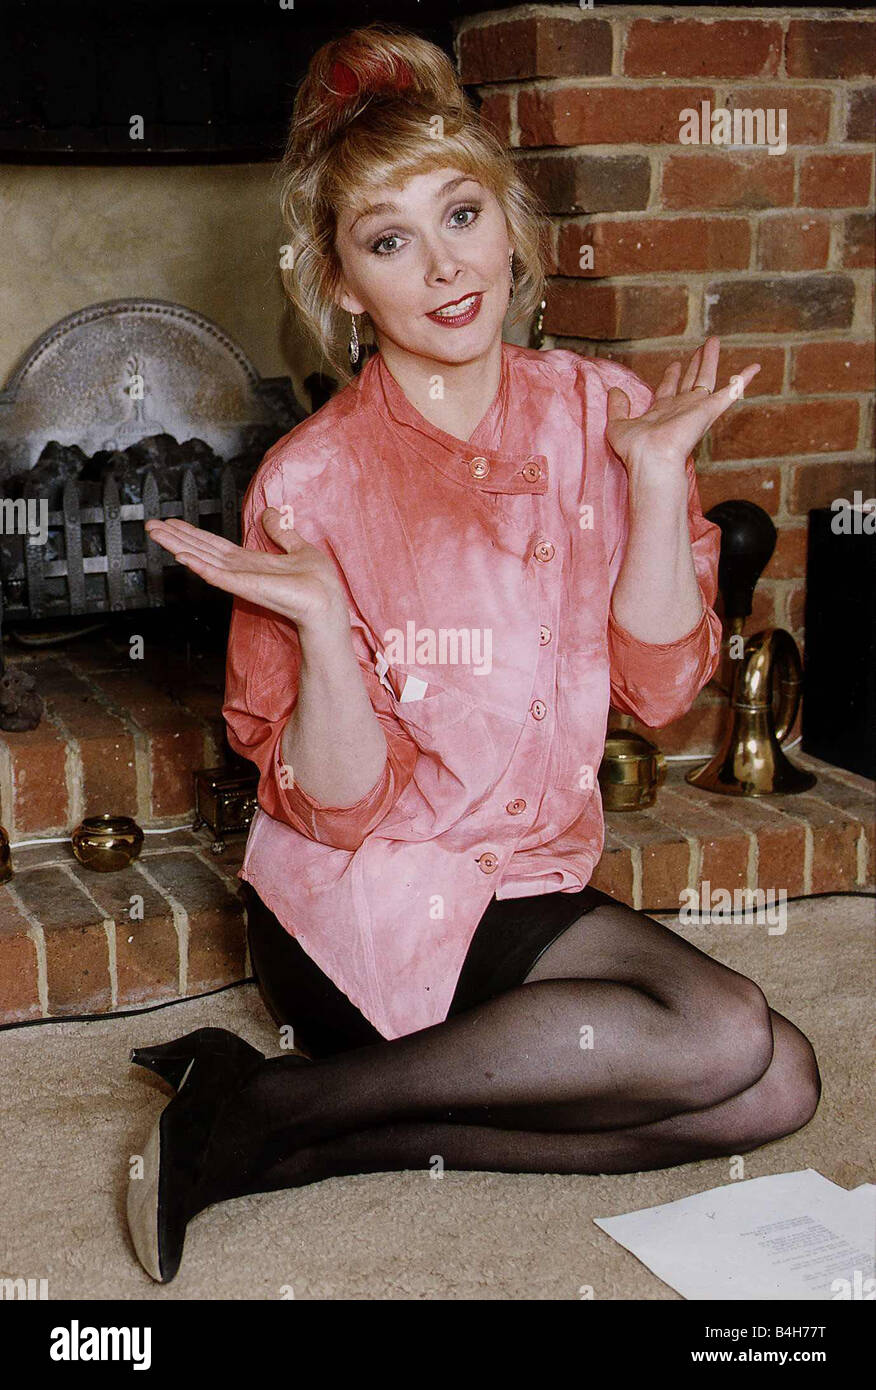 Cheryl Baker Nude Photos 19